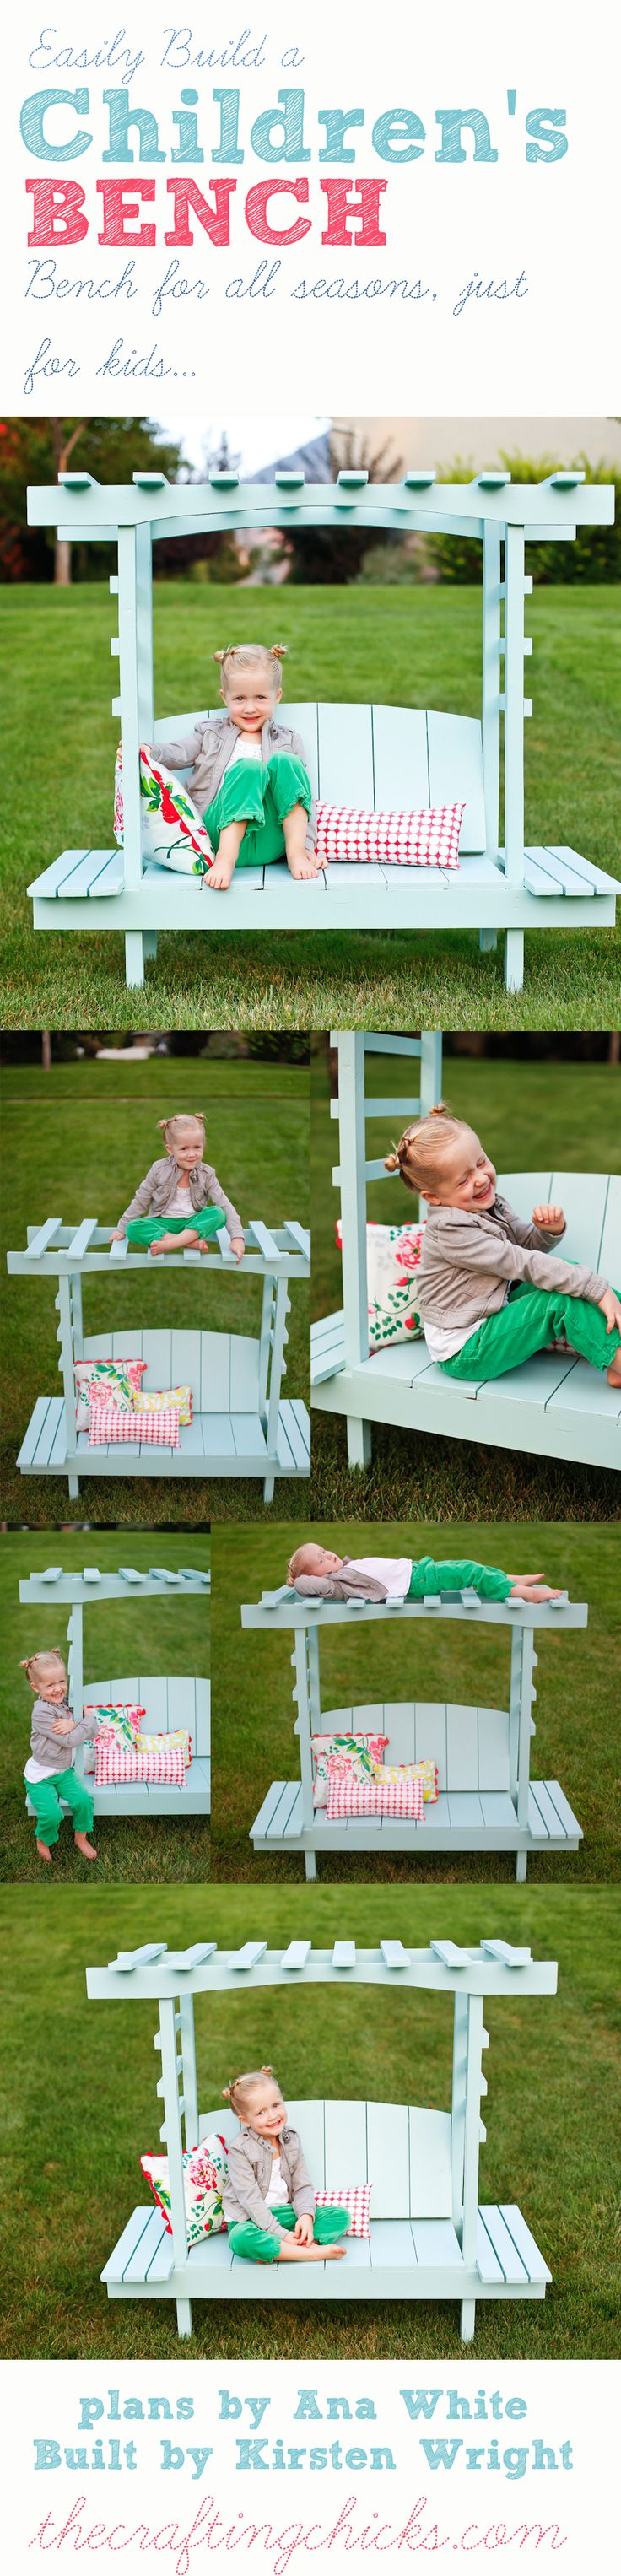 DIY easy build a children's Arbor Bench #diy #woodproject